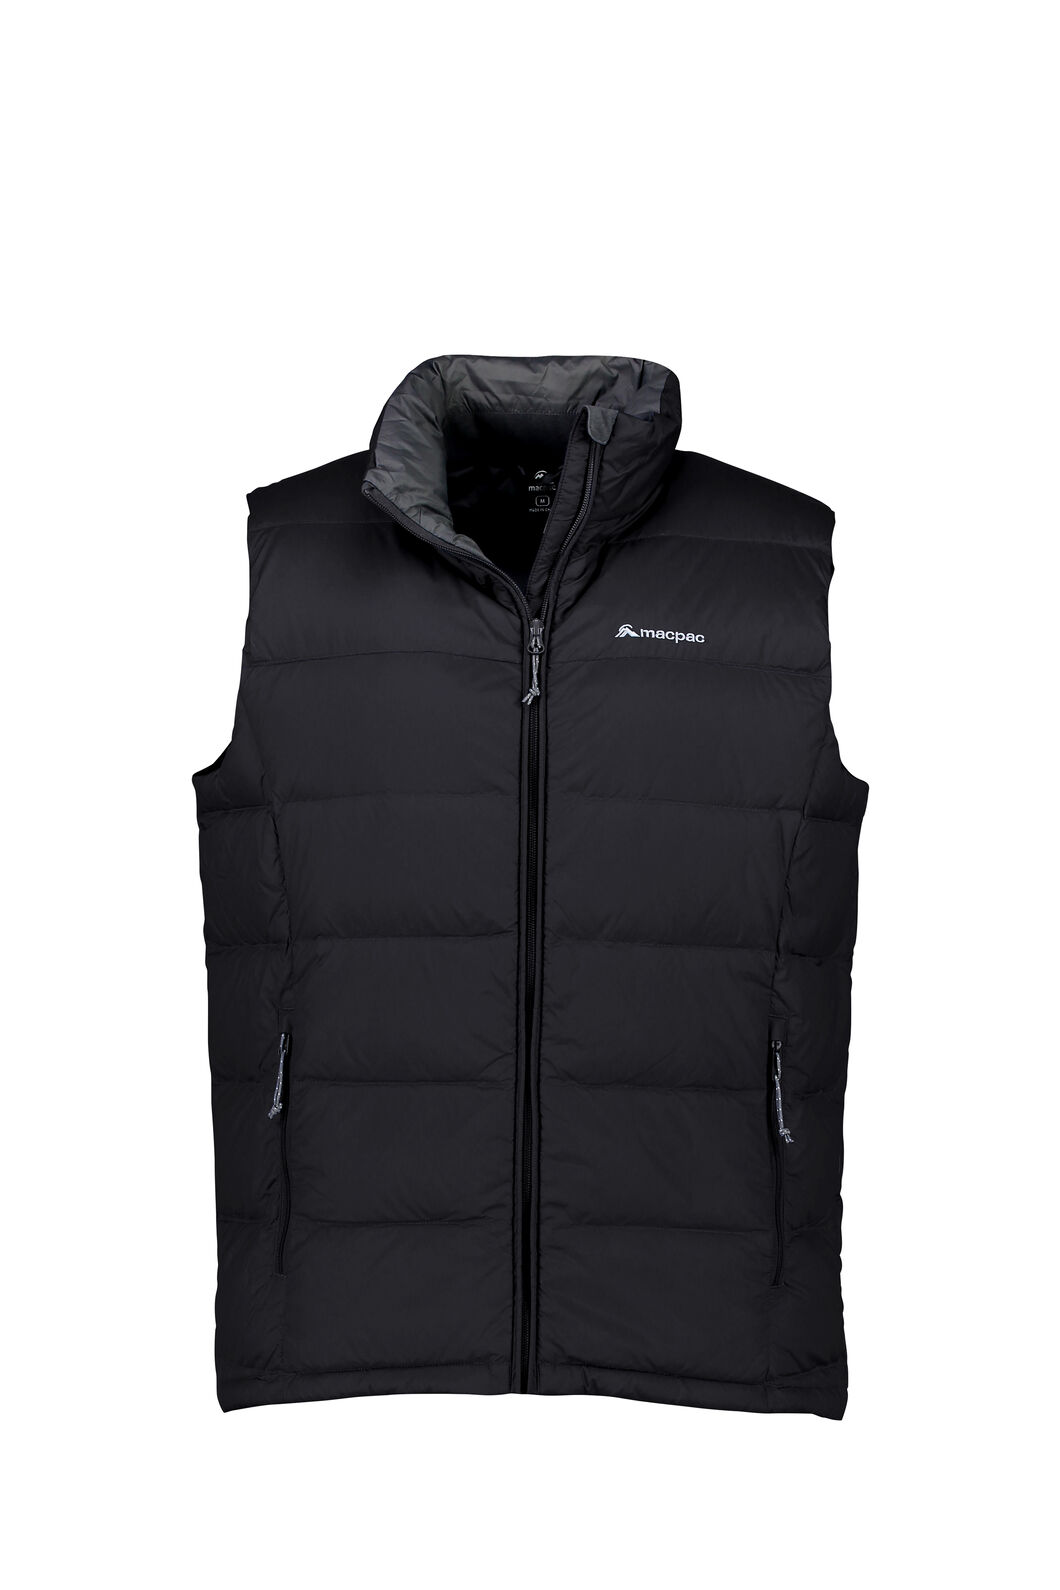 Macpac Halo Down Vest — Men's, Black, hi-res